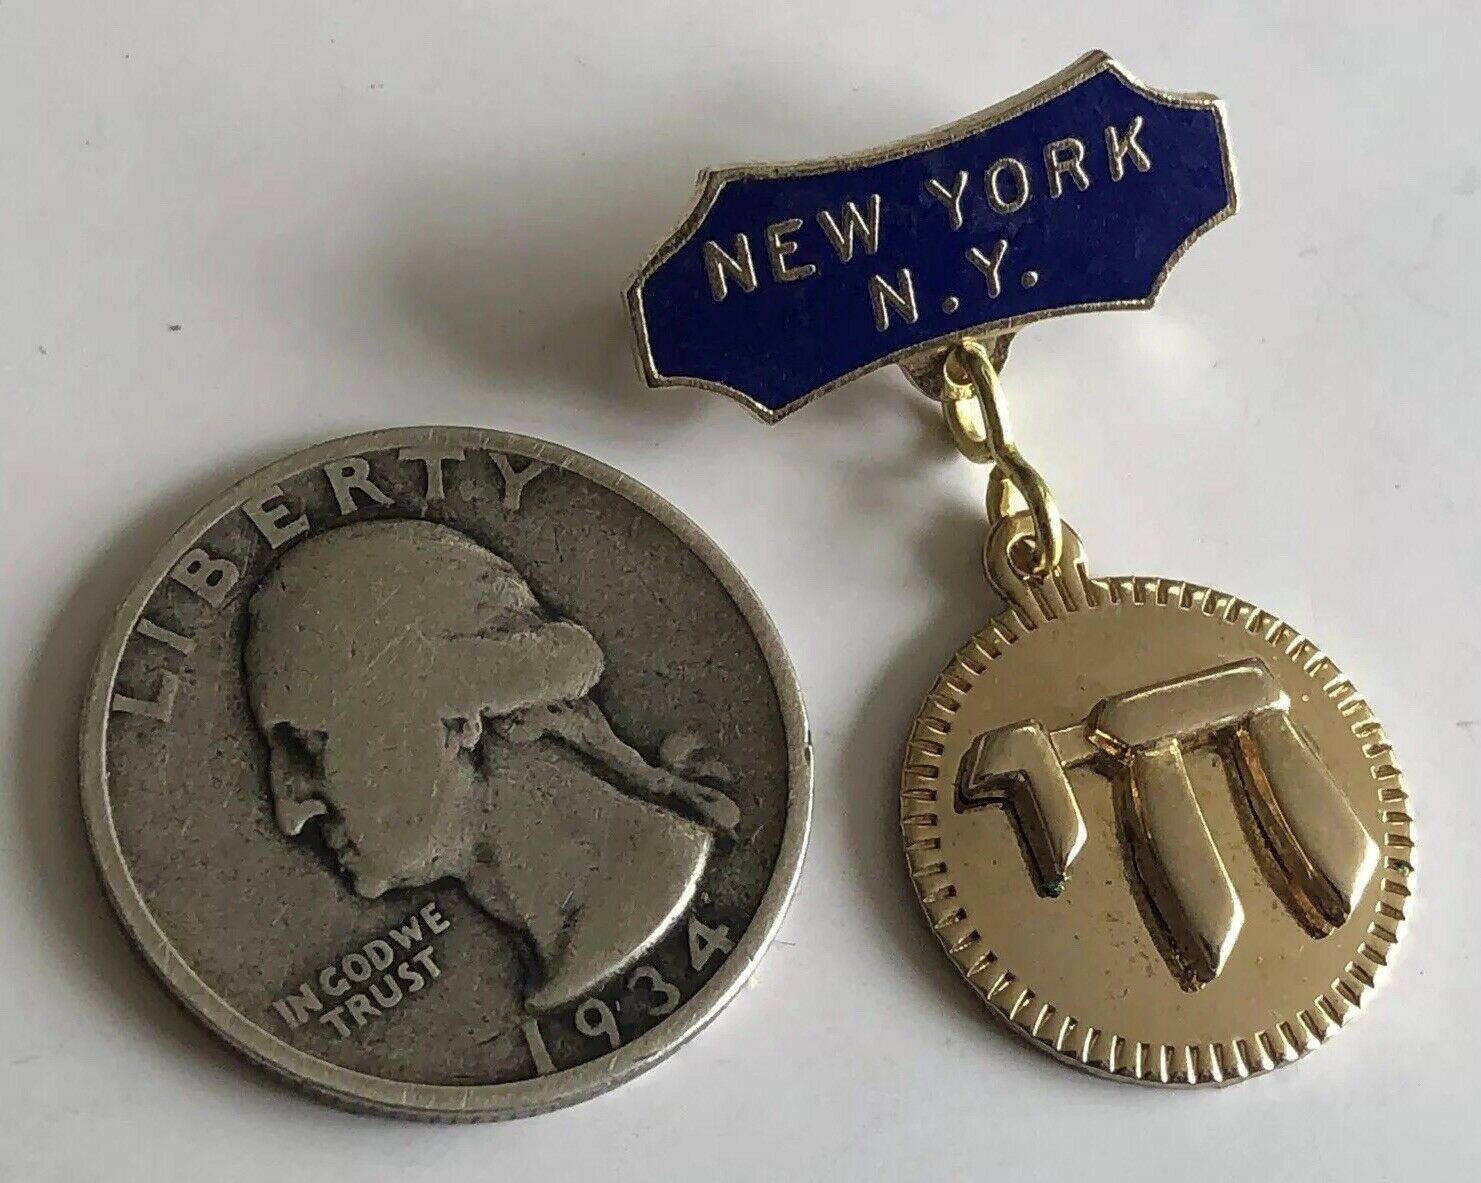 Vintage 1940's NYC JEWISH SWEETHEART Lapel Pin with CHAI New York City Souvenir